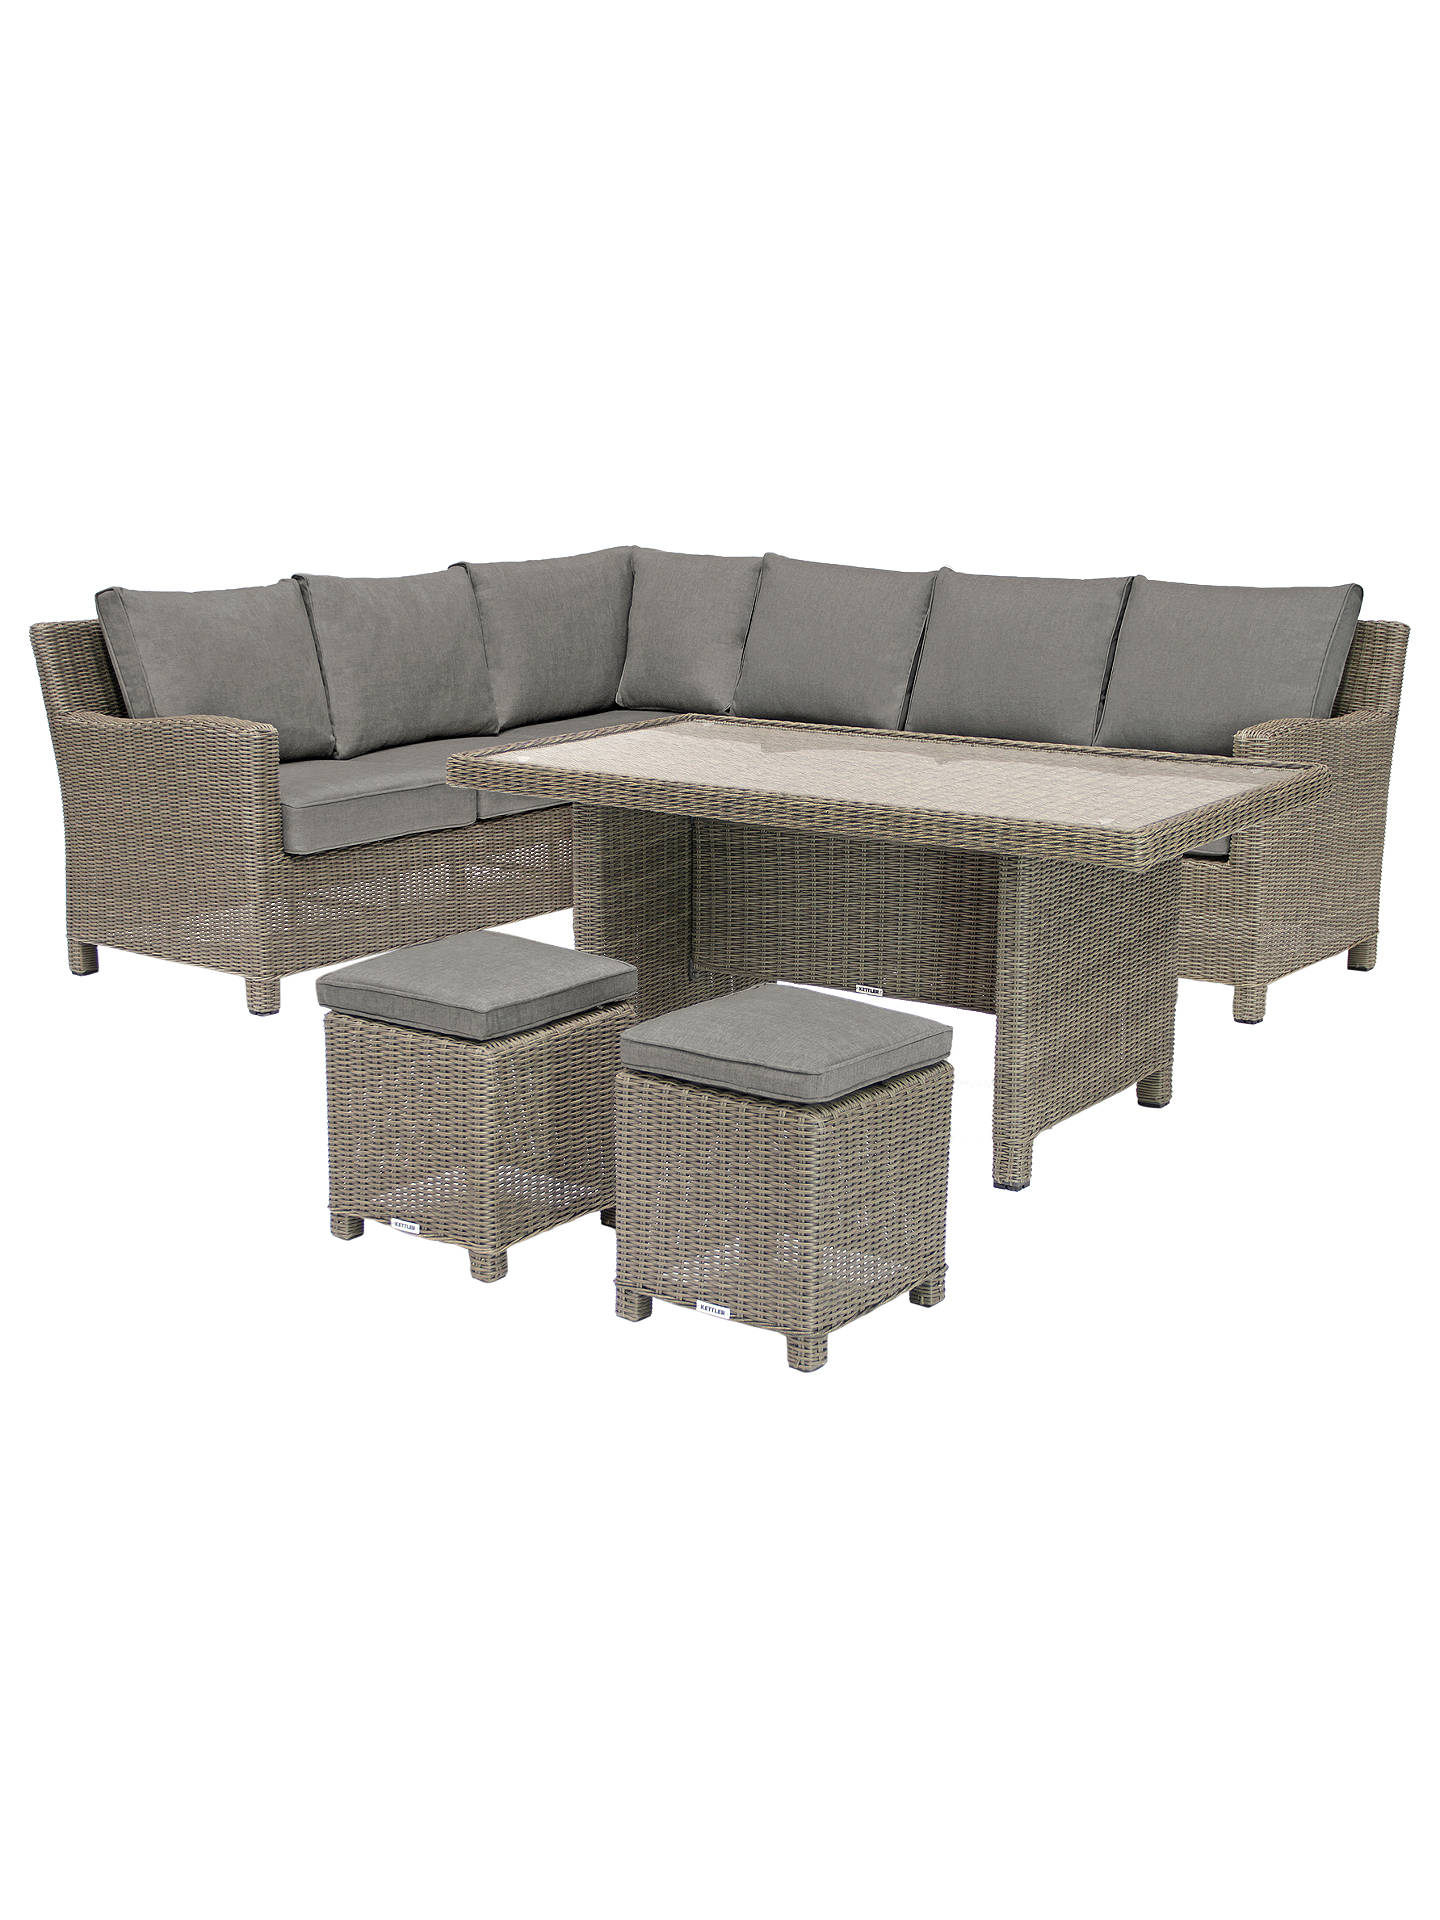 062bc107c03f Buy KETTLER Palma 7 Seater Garden Corner Set With Glass Top Table, Natural  Online at